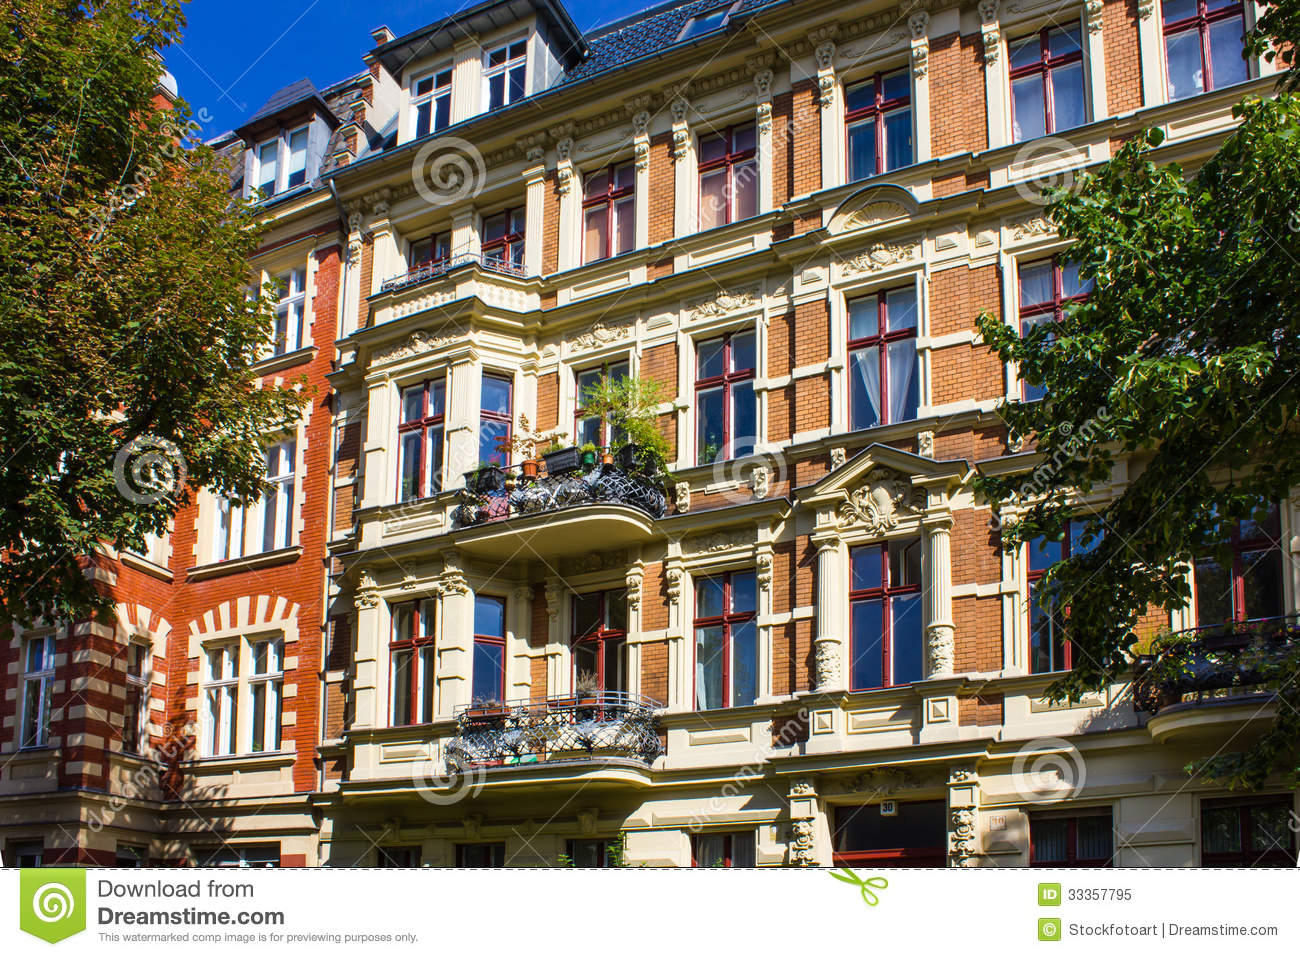 Berlin Historic Apartment House Stock Image - Image of ...